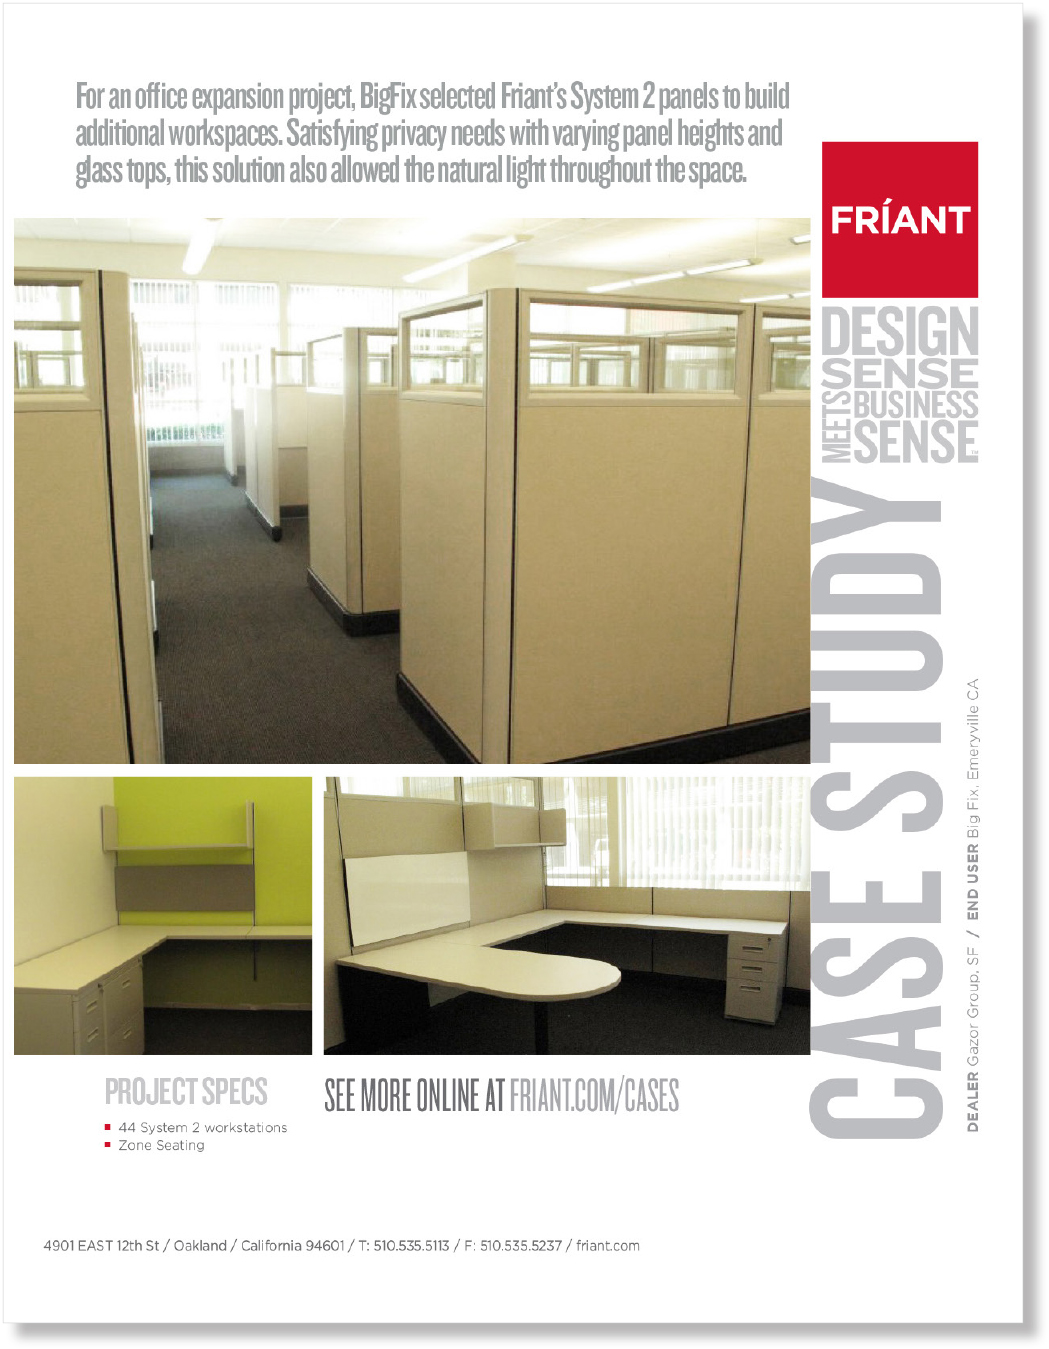 Case study for Friant